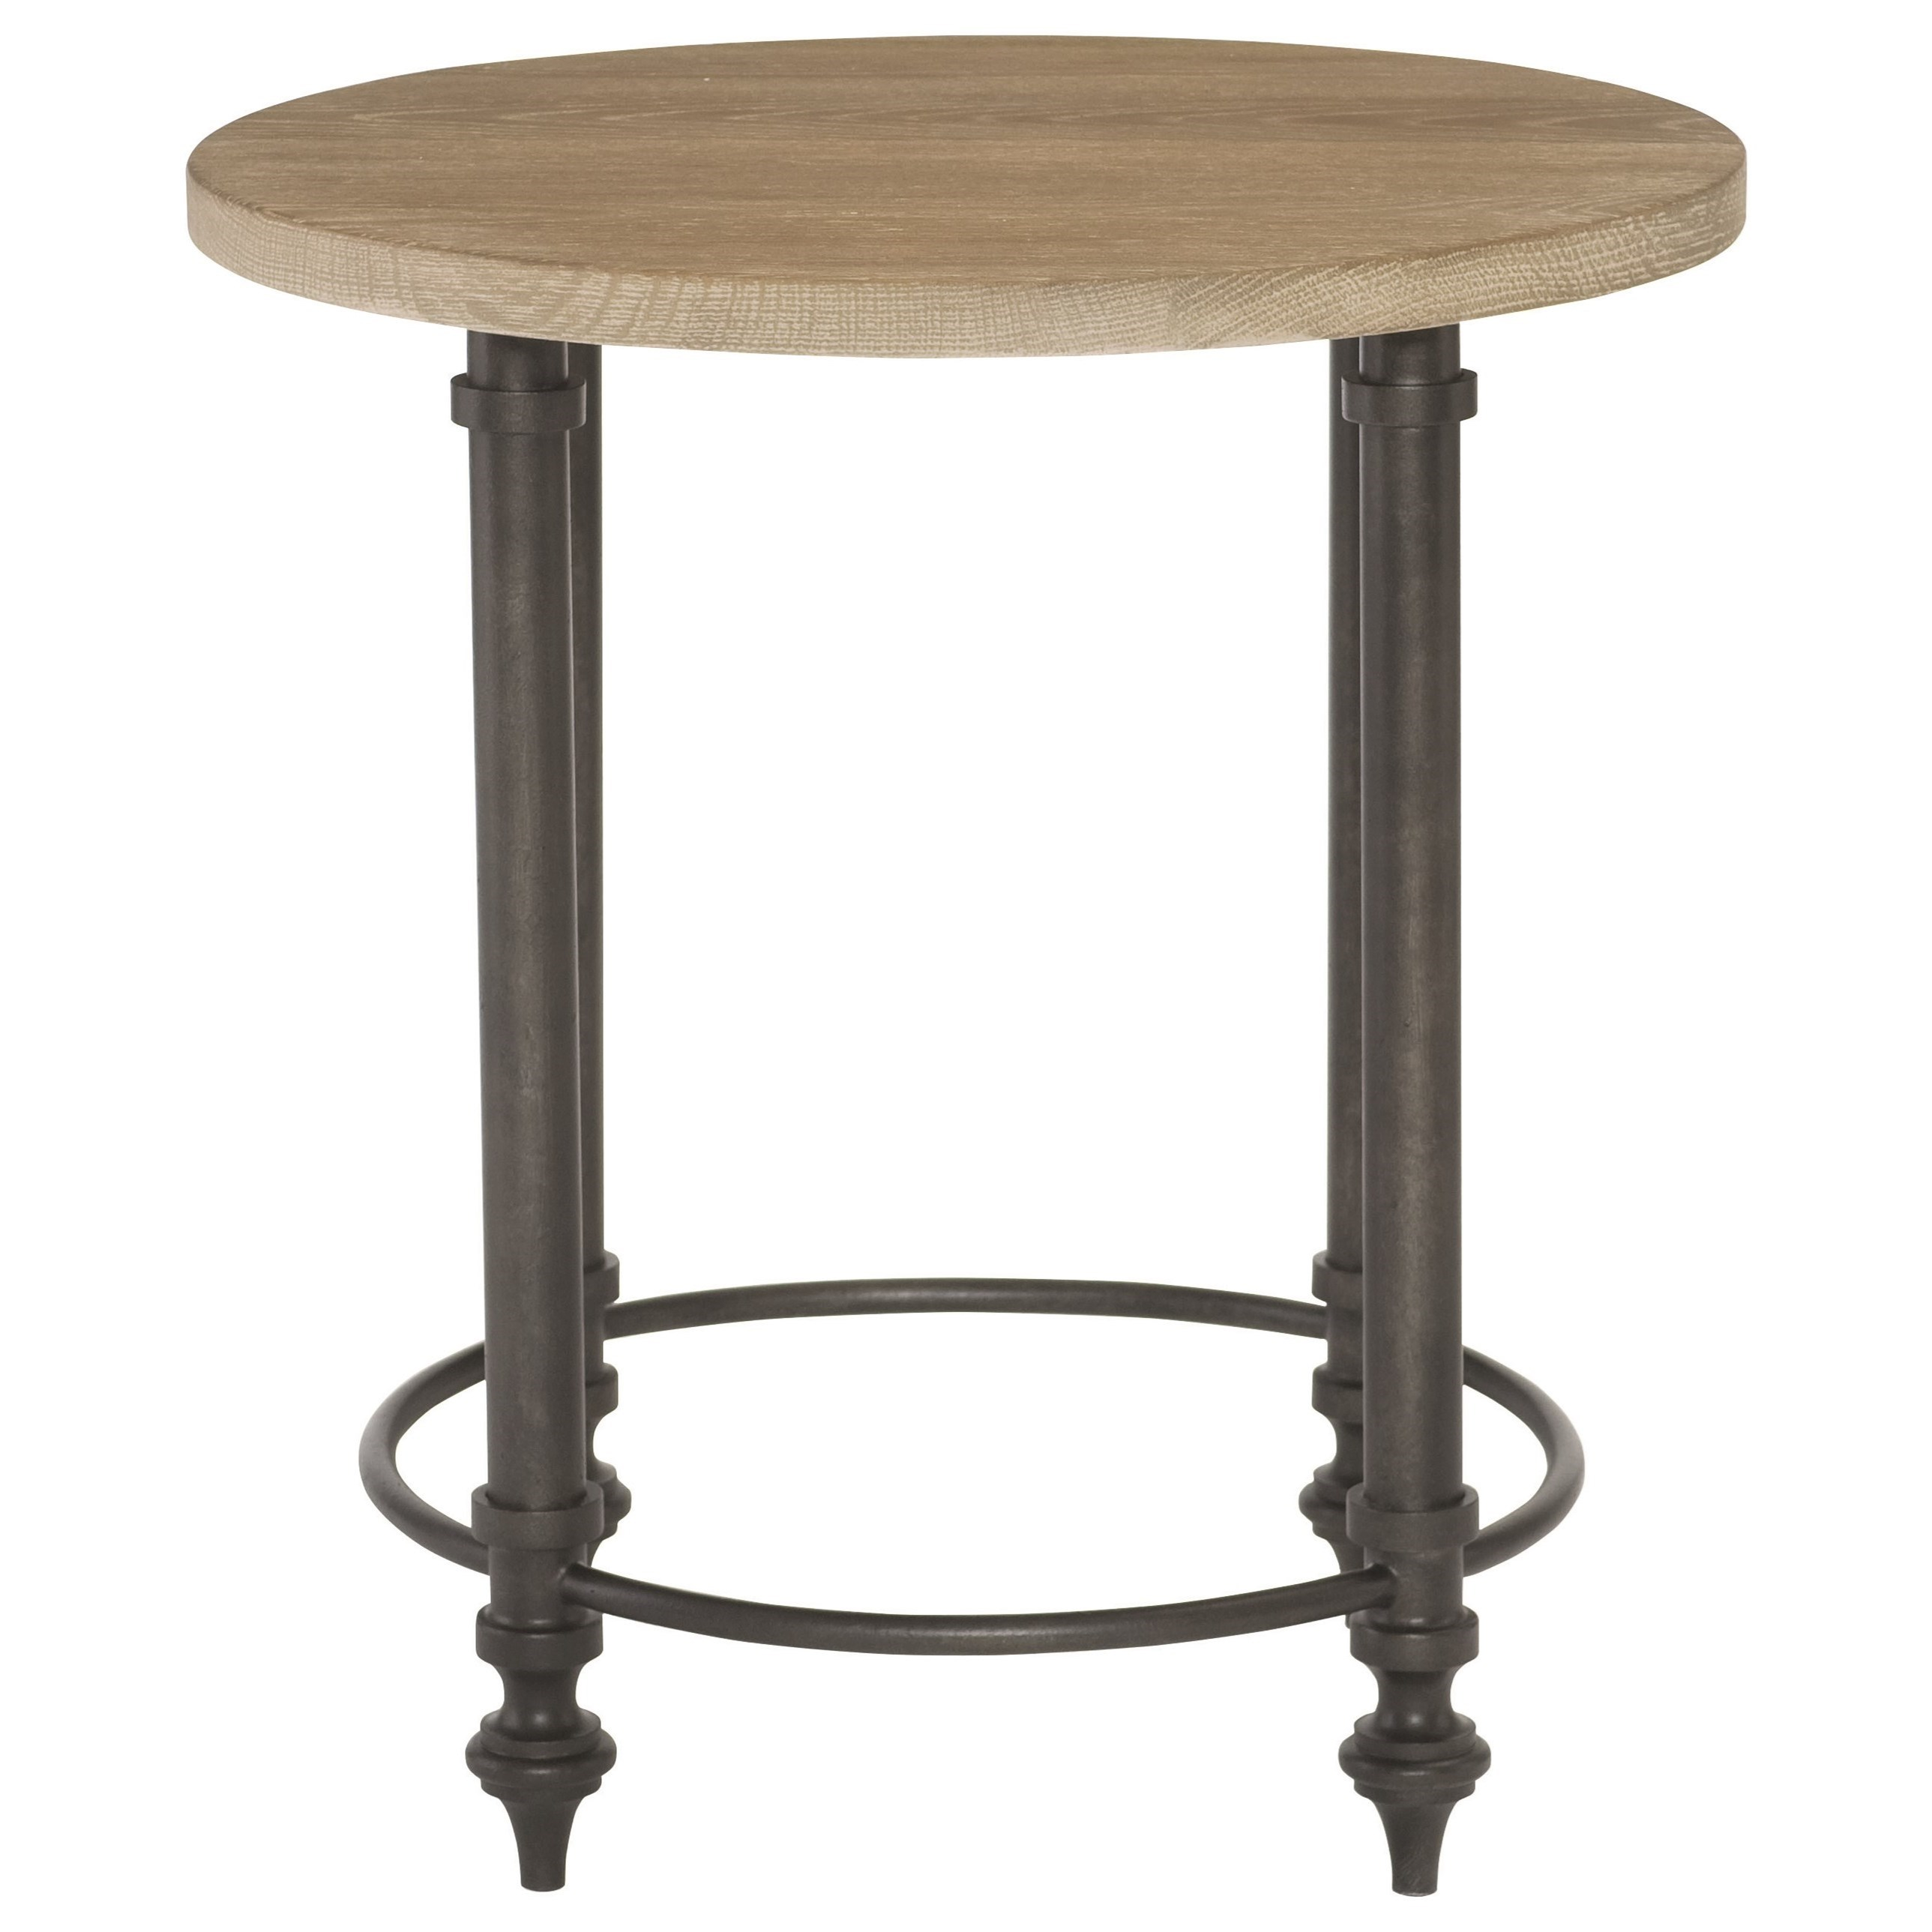 Bernhardt antiquarian round end table with metal base for Bright colored side tables